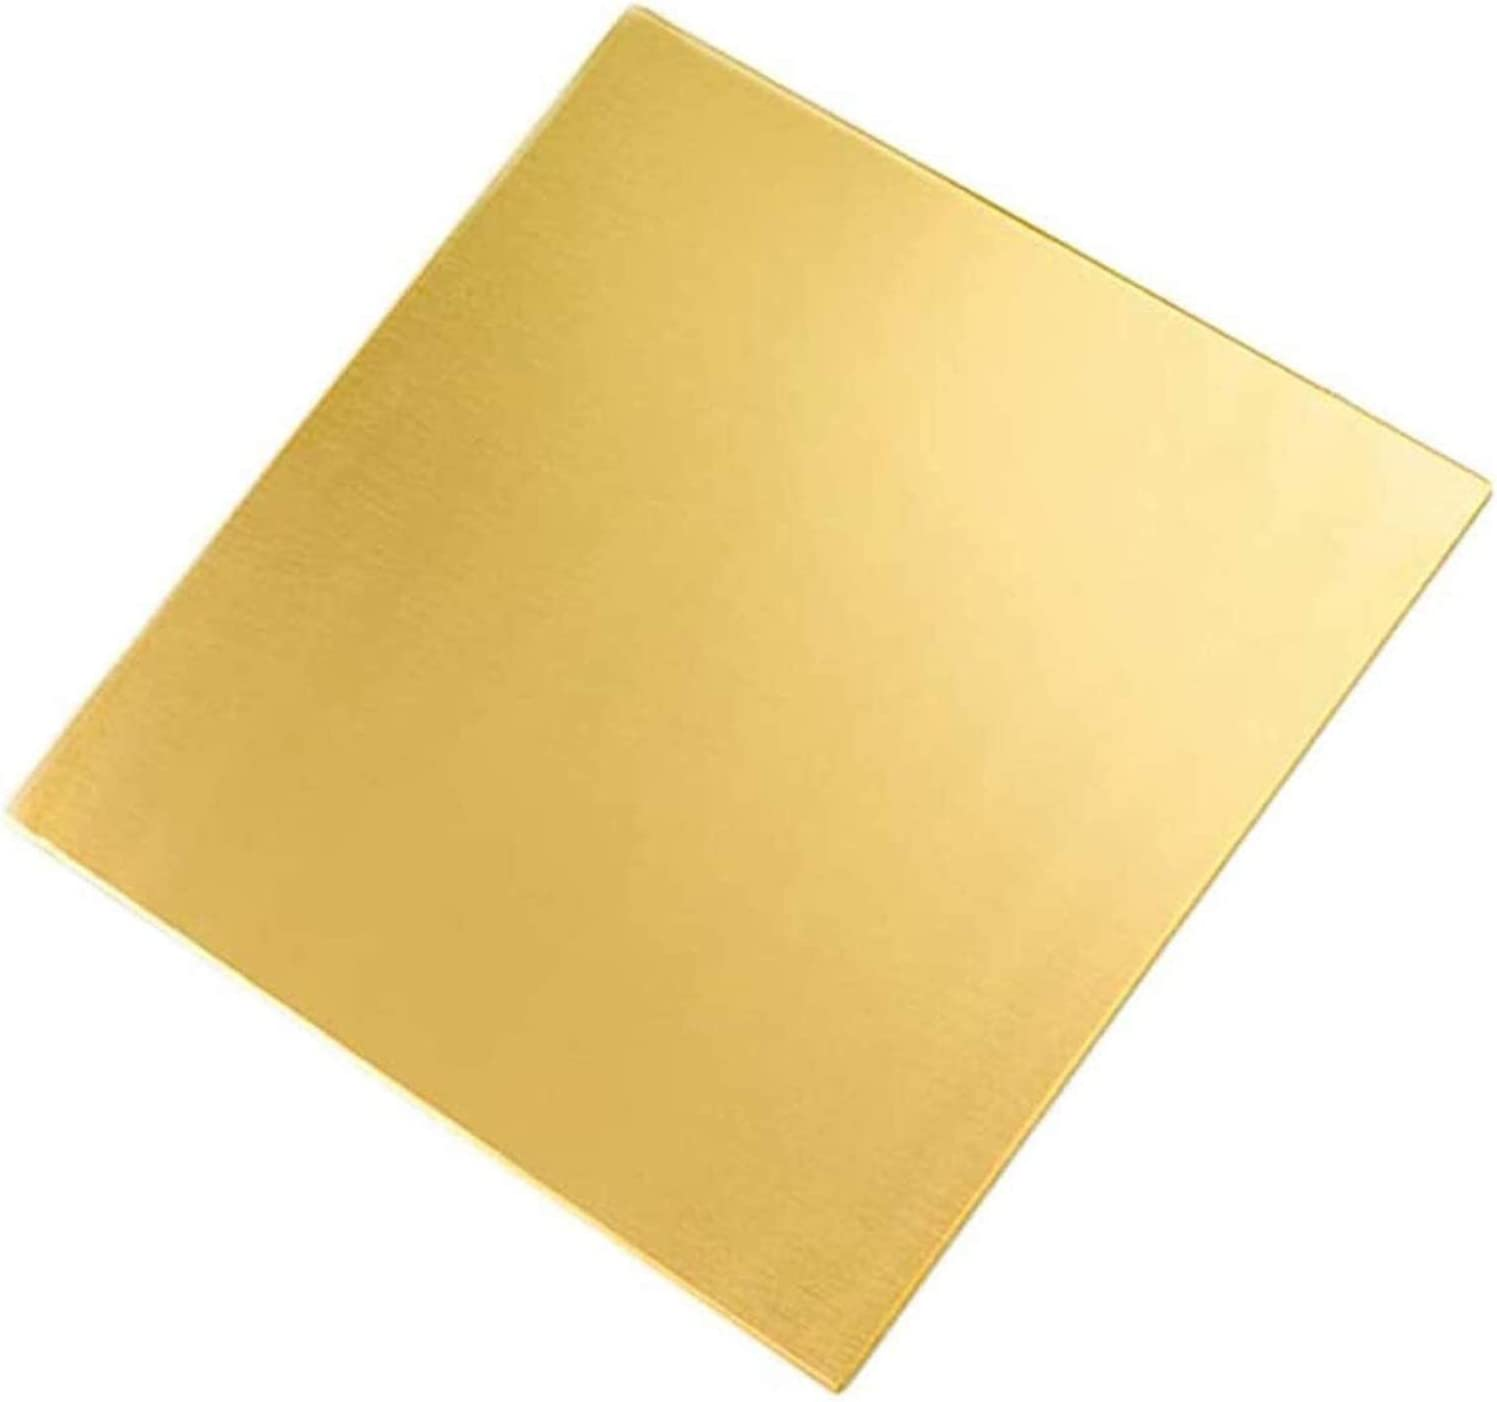 Wzqwzj Brass Metal Sheet Outstanding Rich and Sizes 100Mmx100 55% OFF Specifications